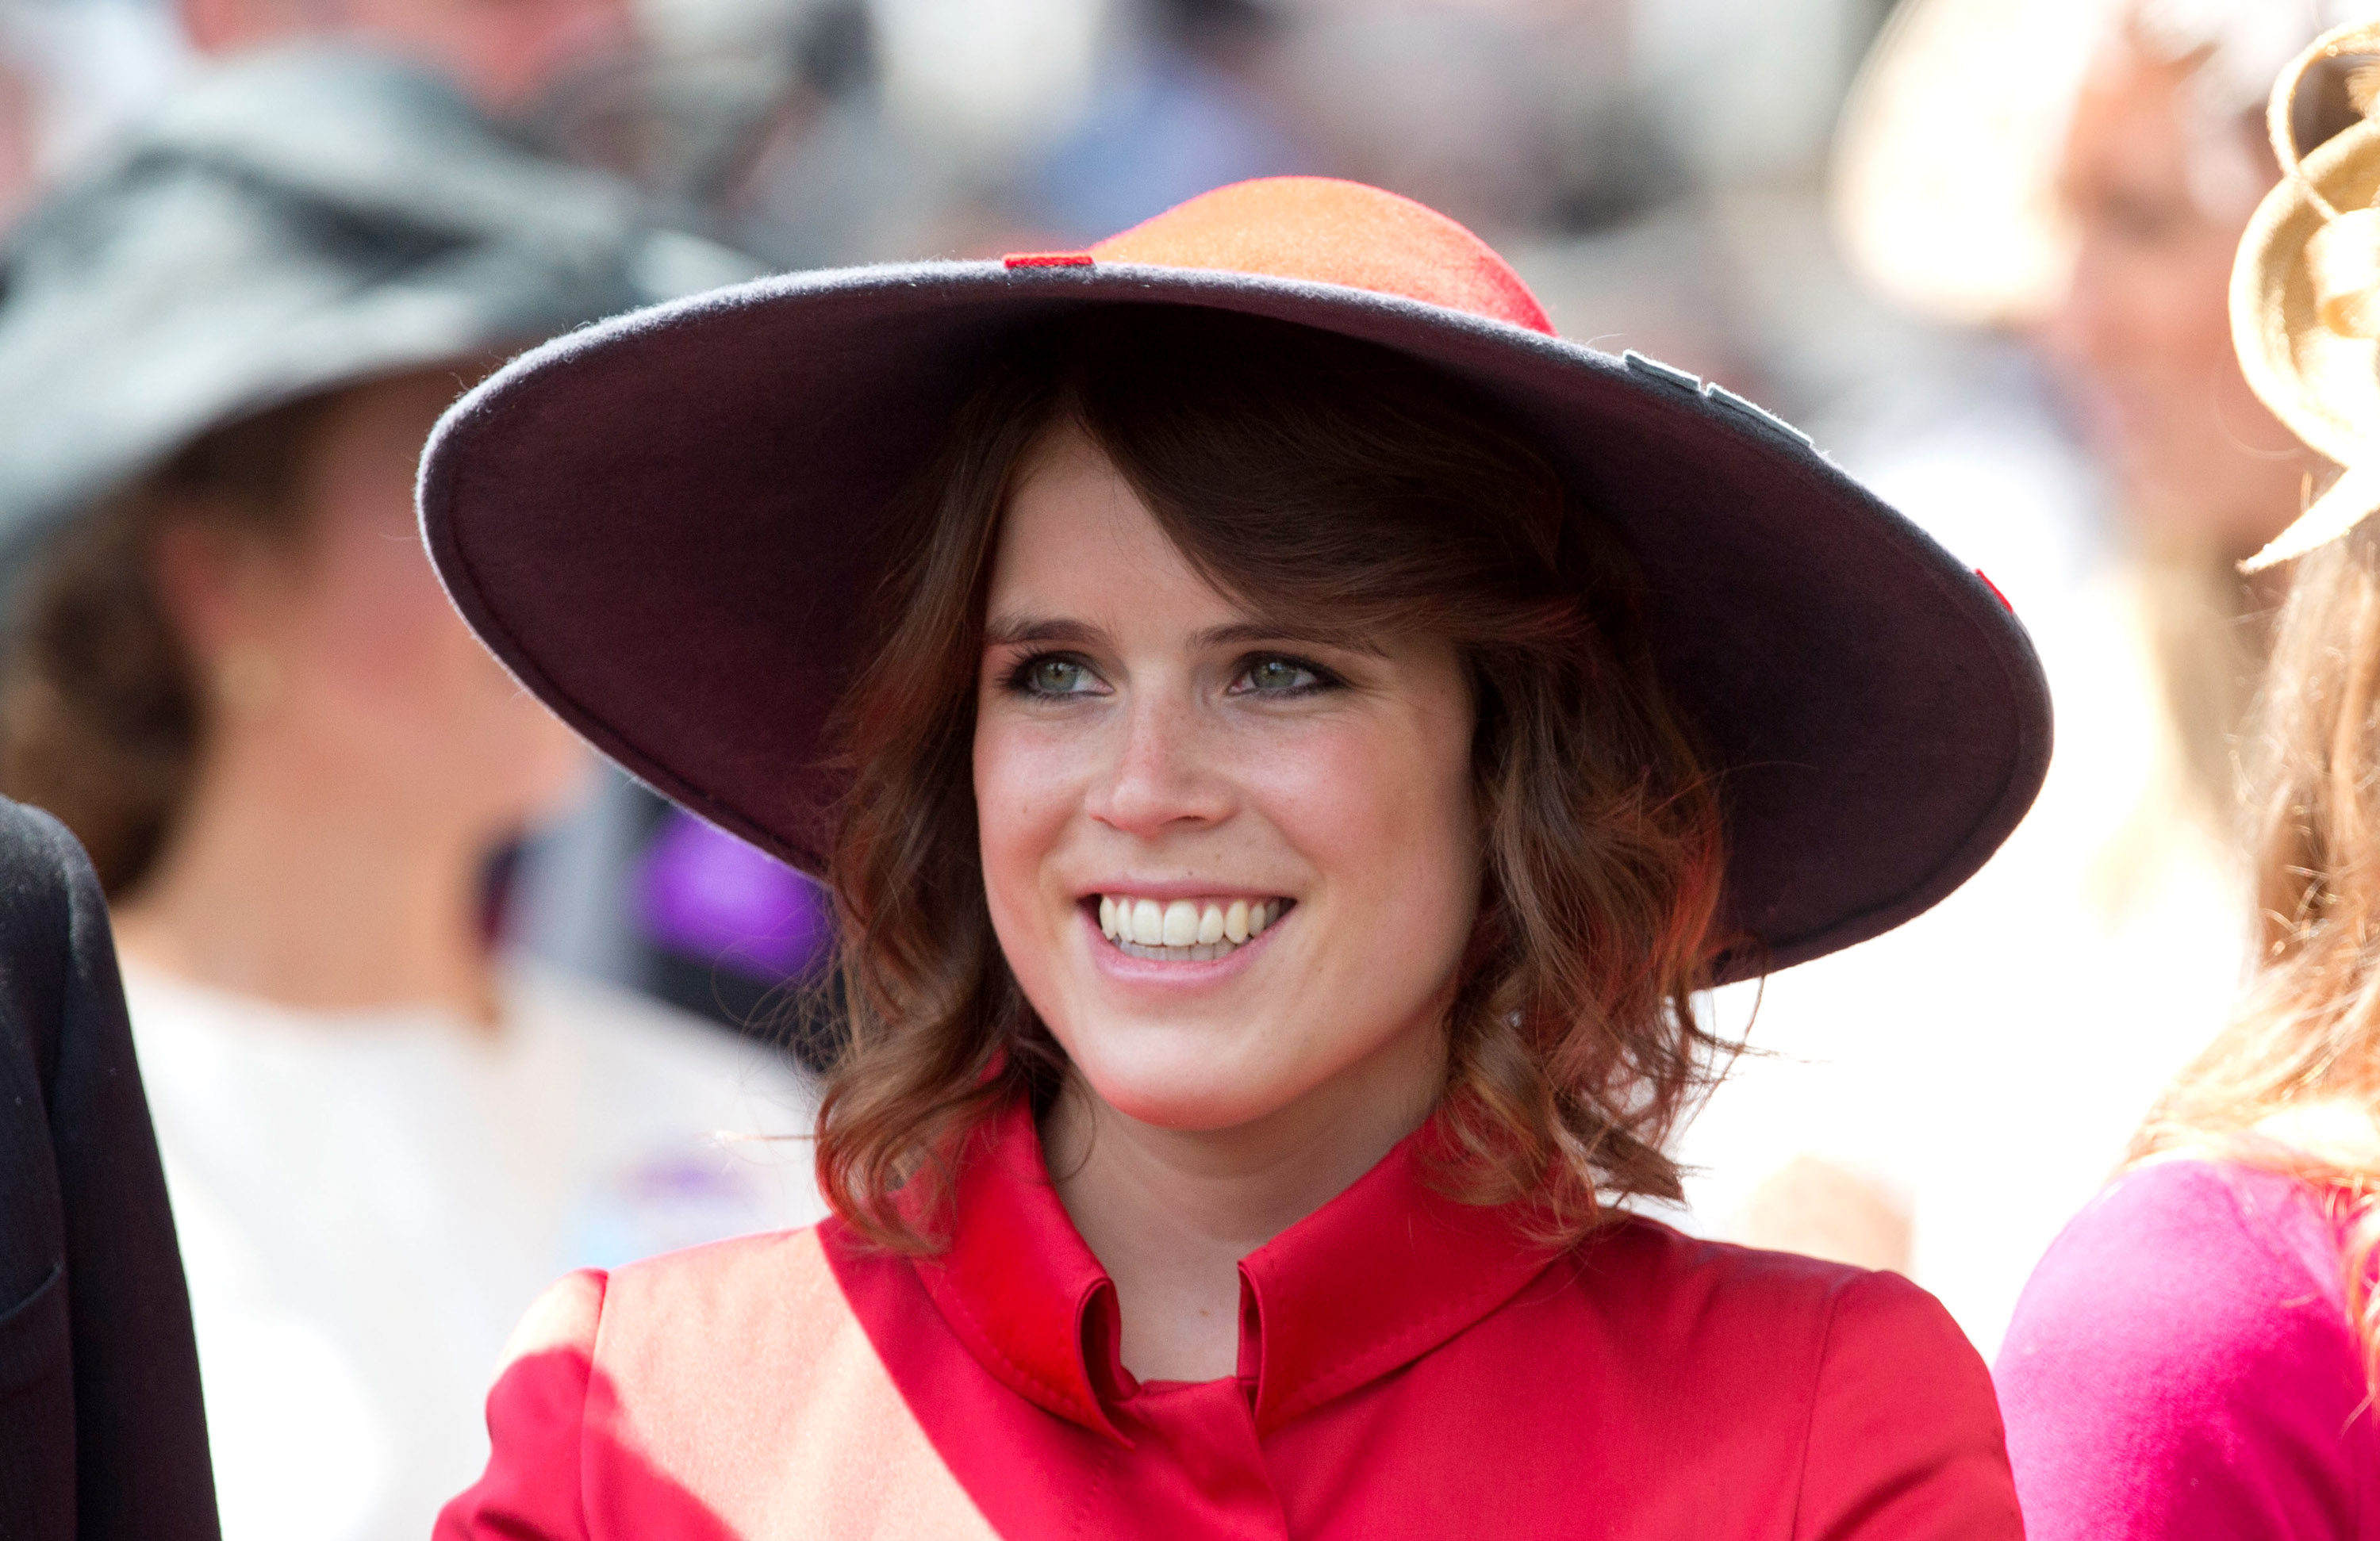 Princess Eugenie liked a Meghan Markle pic on Instagram in most relatable move ever